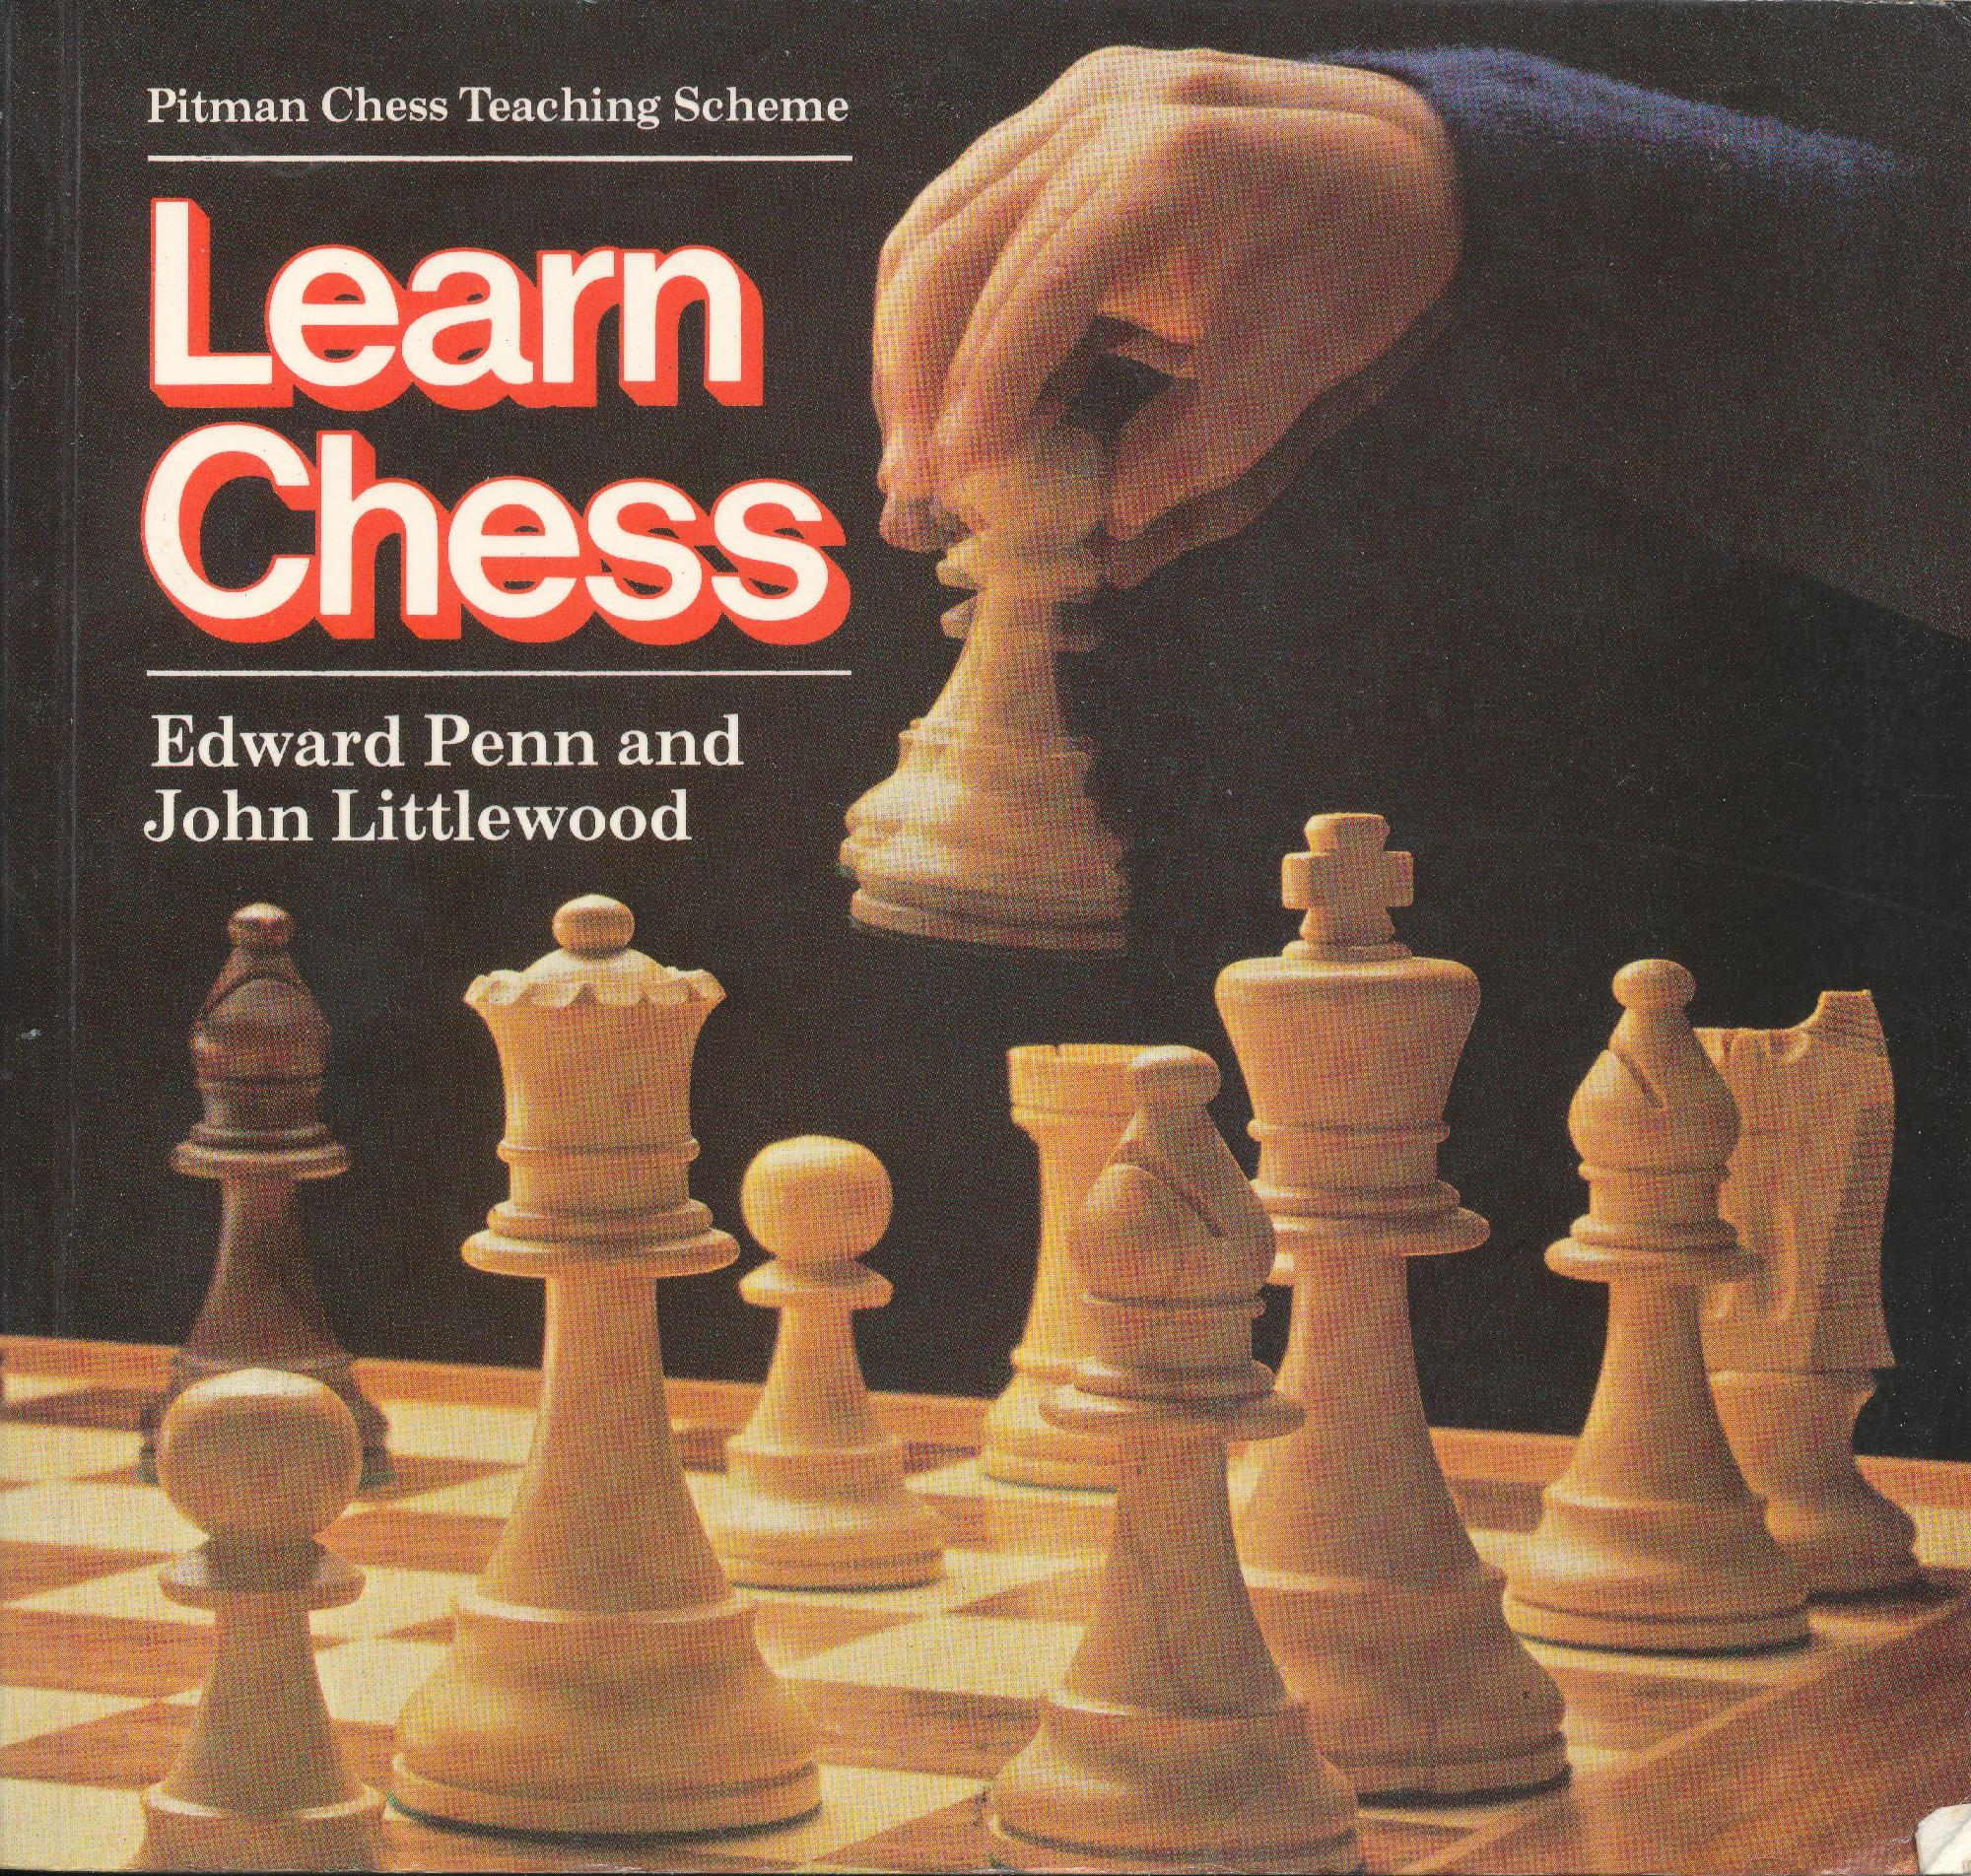 Learn Chess by Edward Penn and John Littlewood, Pitman House, 1980